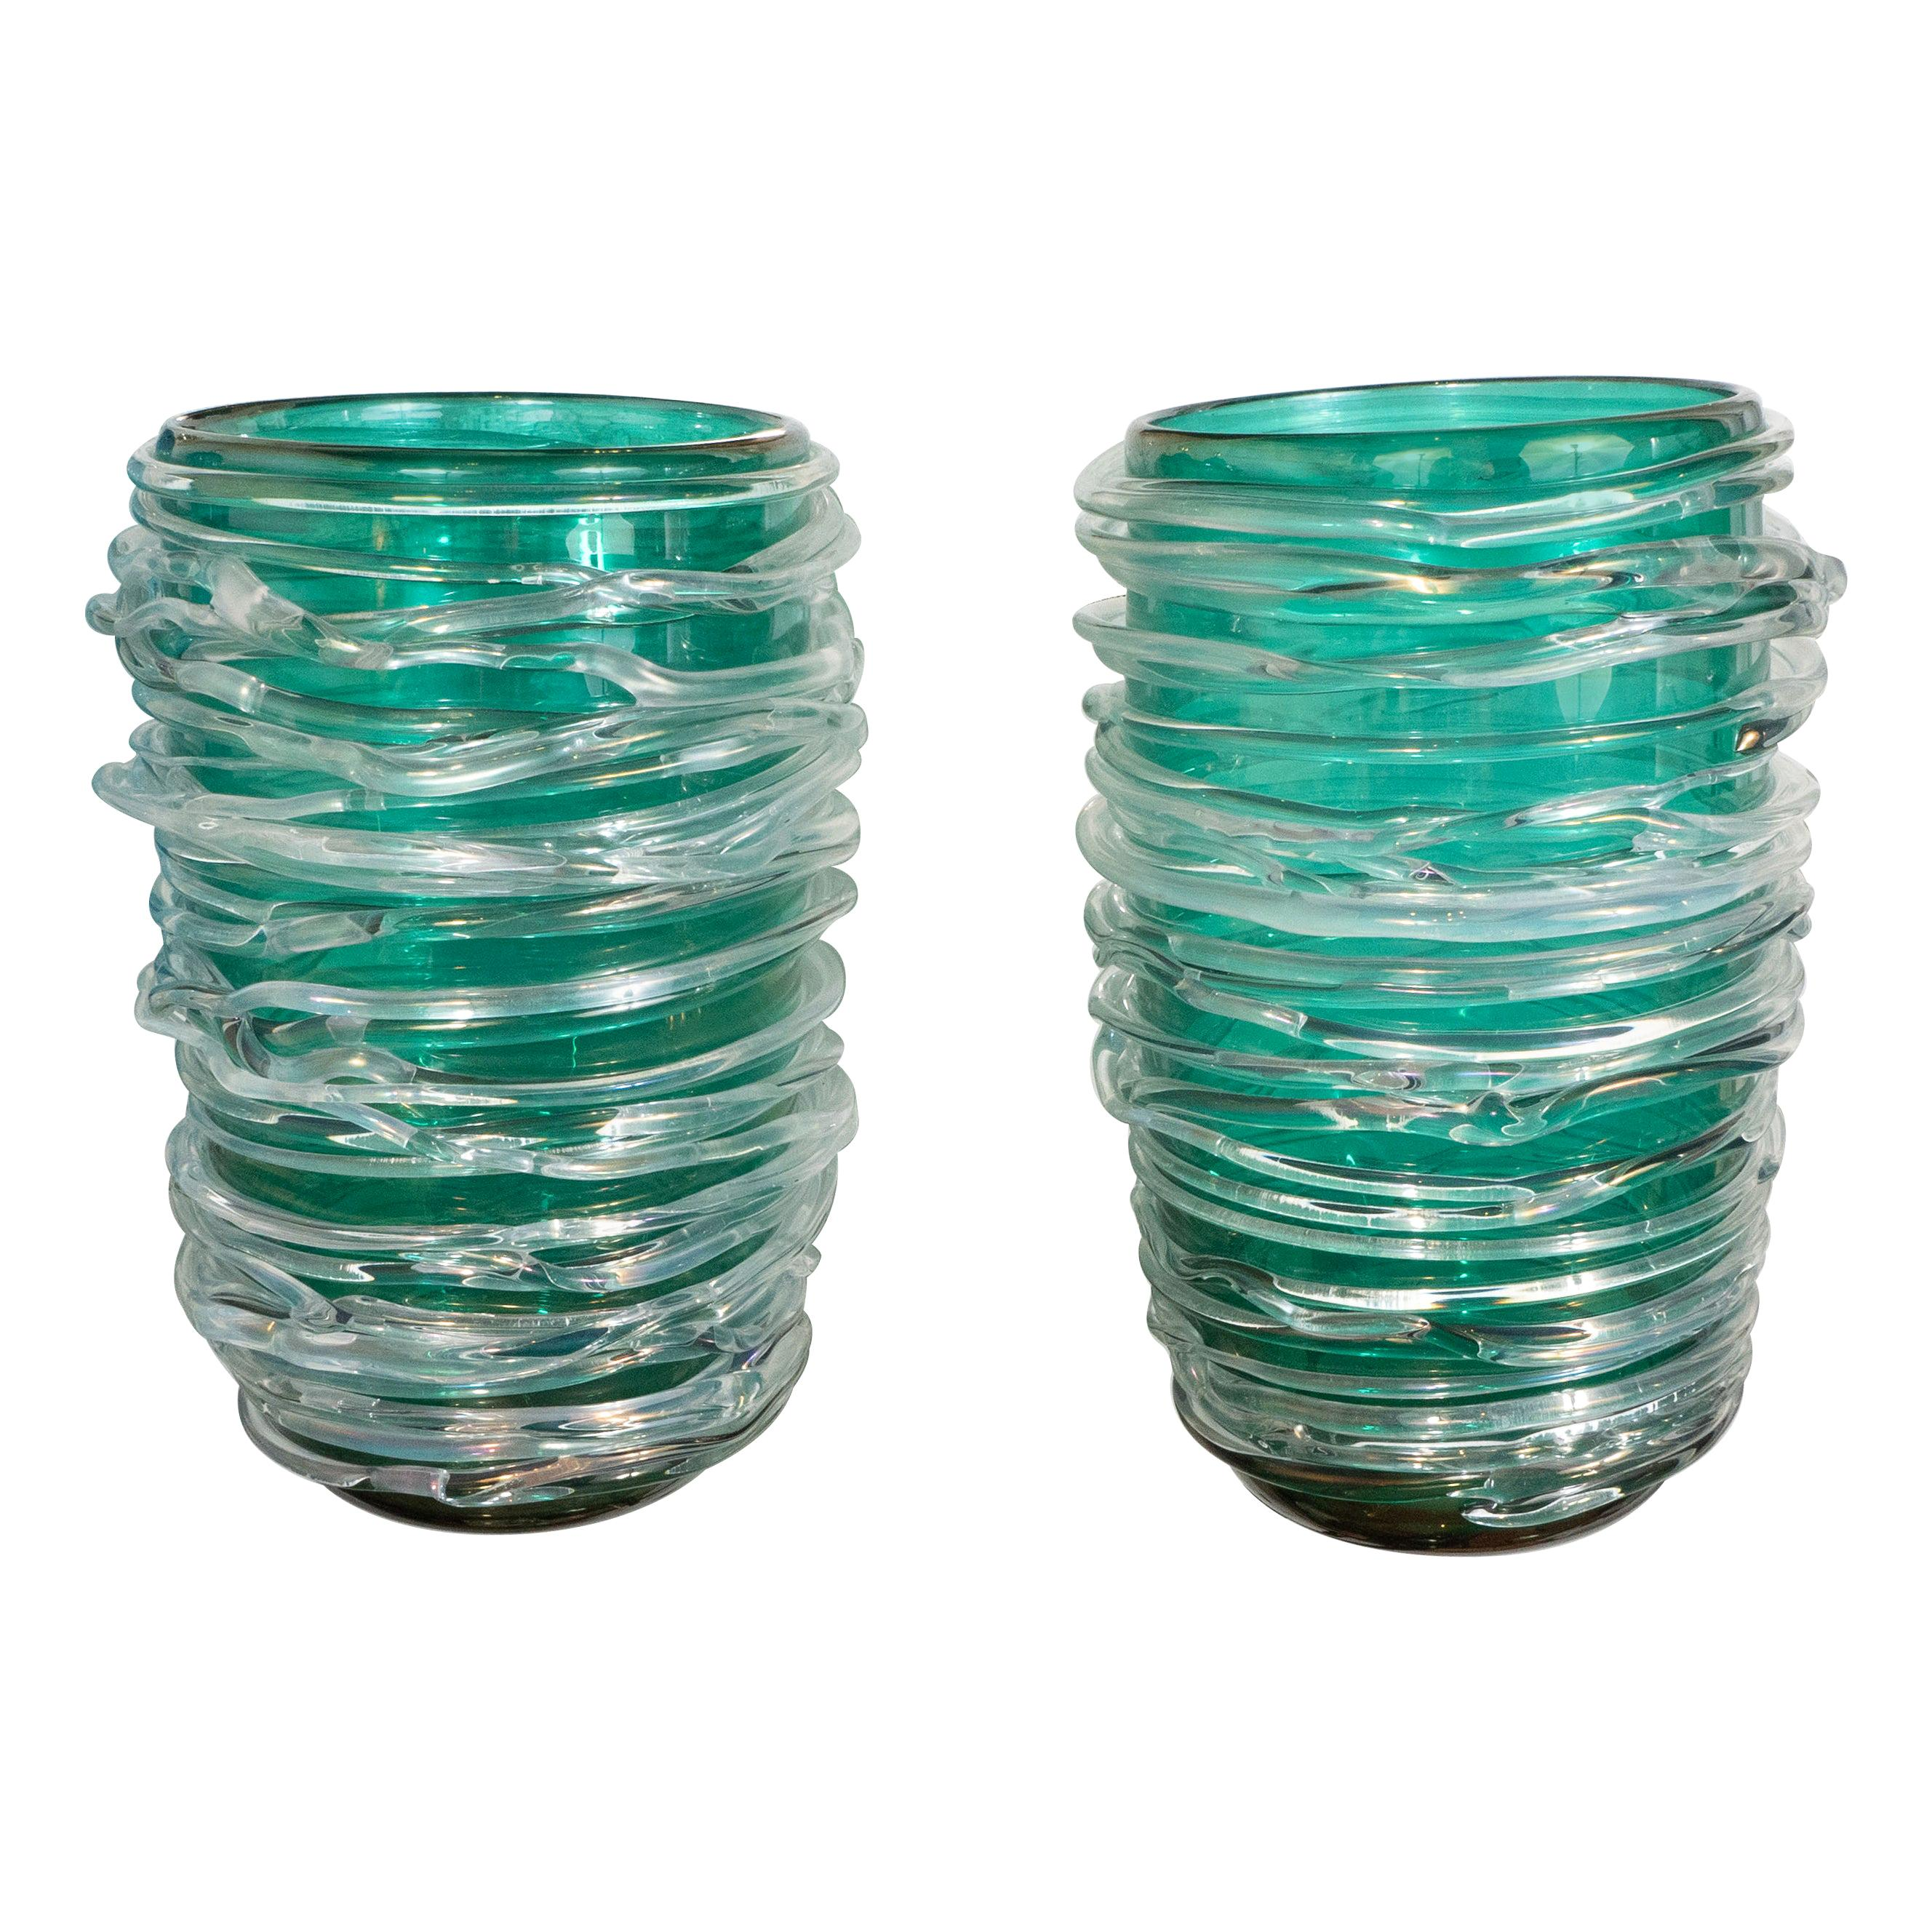 Pair of Emerald Green Swirl Murano Glass Vases by Cenedese, Signed, 2019